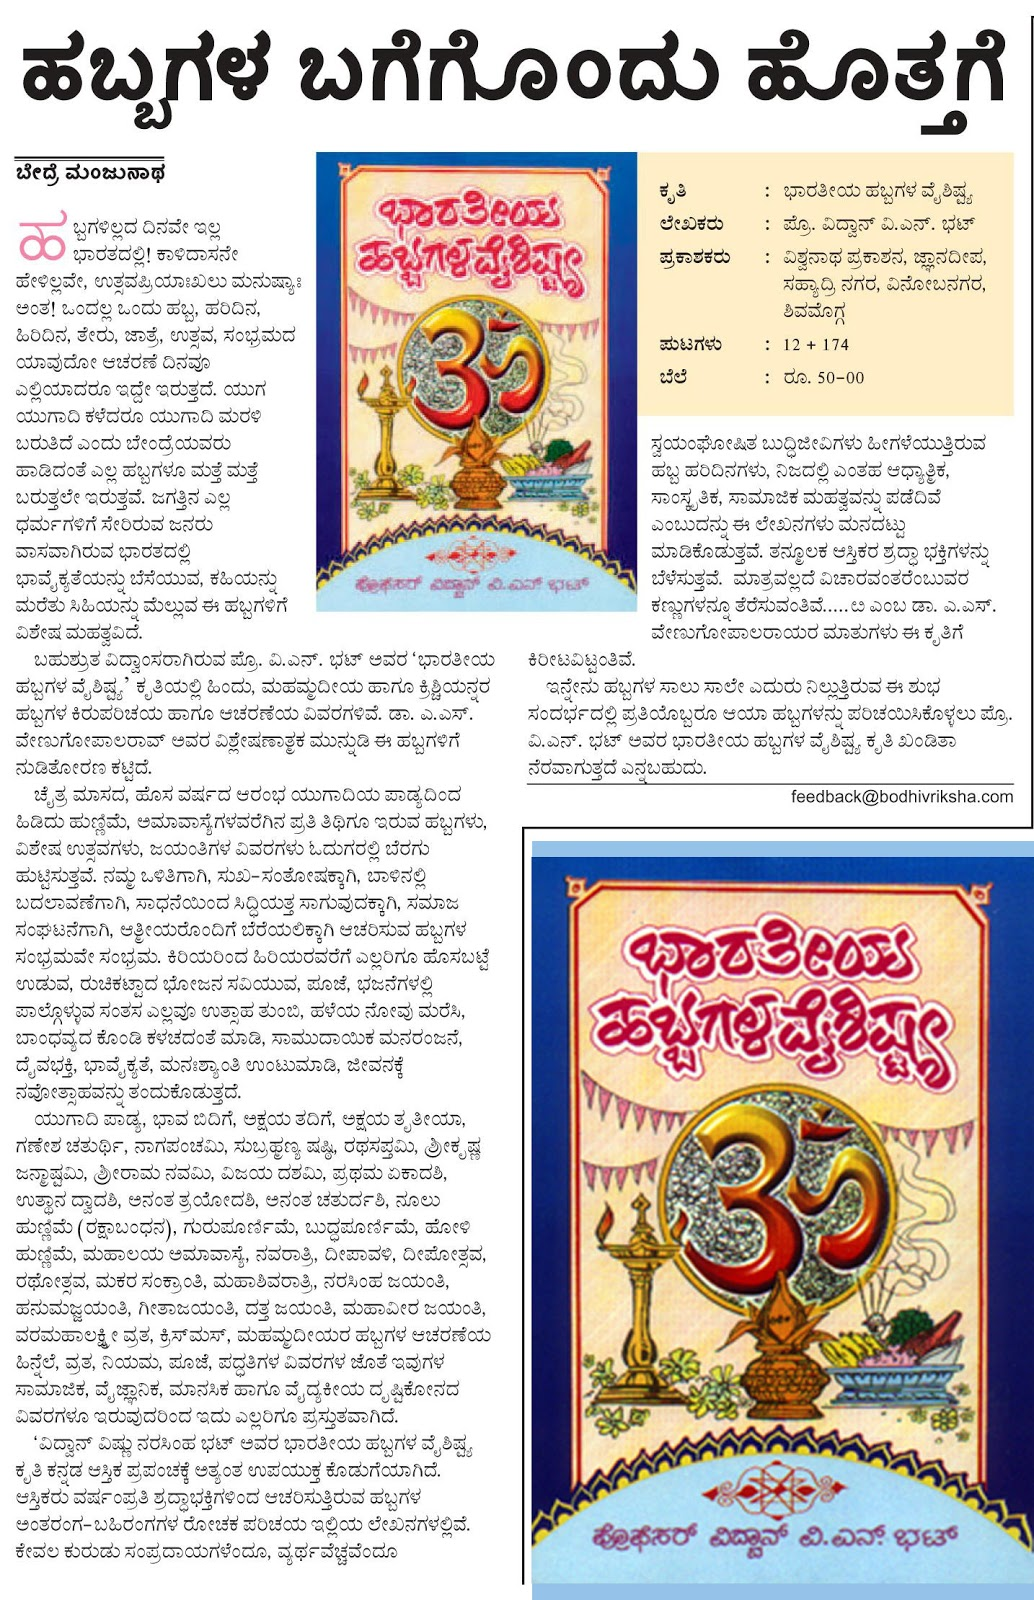 ಬೇದ್ರೆ ಬರಹ n festivals book by prof v n bhatt   n festivals book by prof v n bhatt introduced in bodhivruksha weekly 27 oct 2012